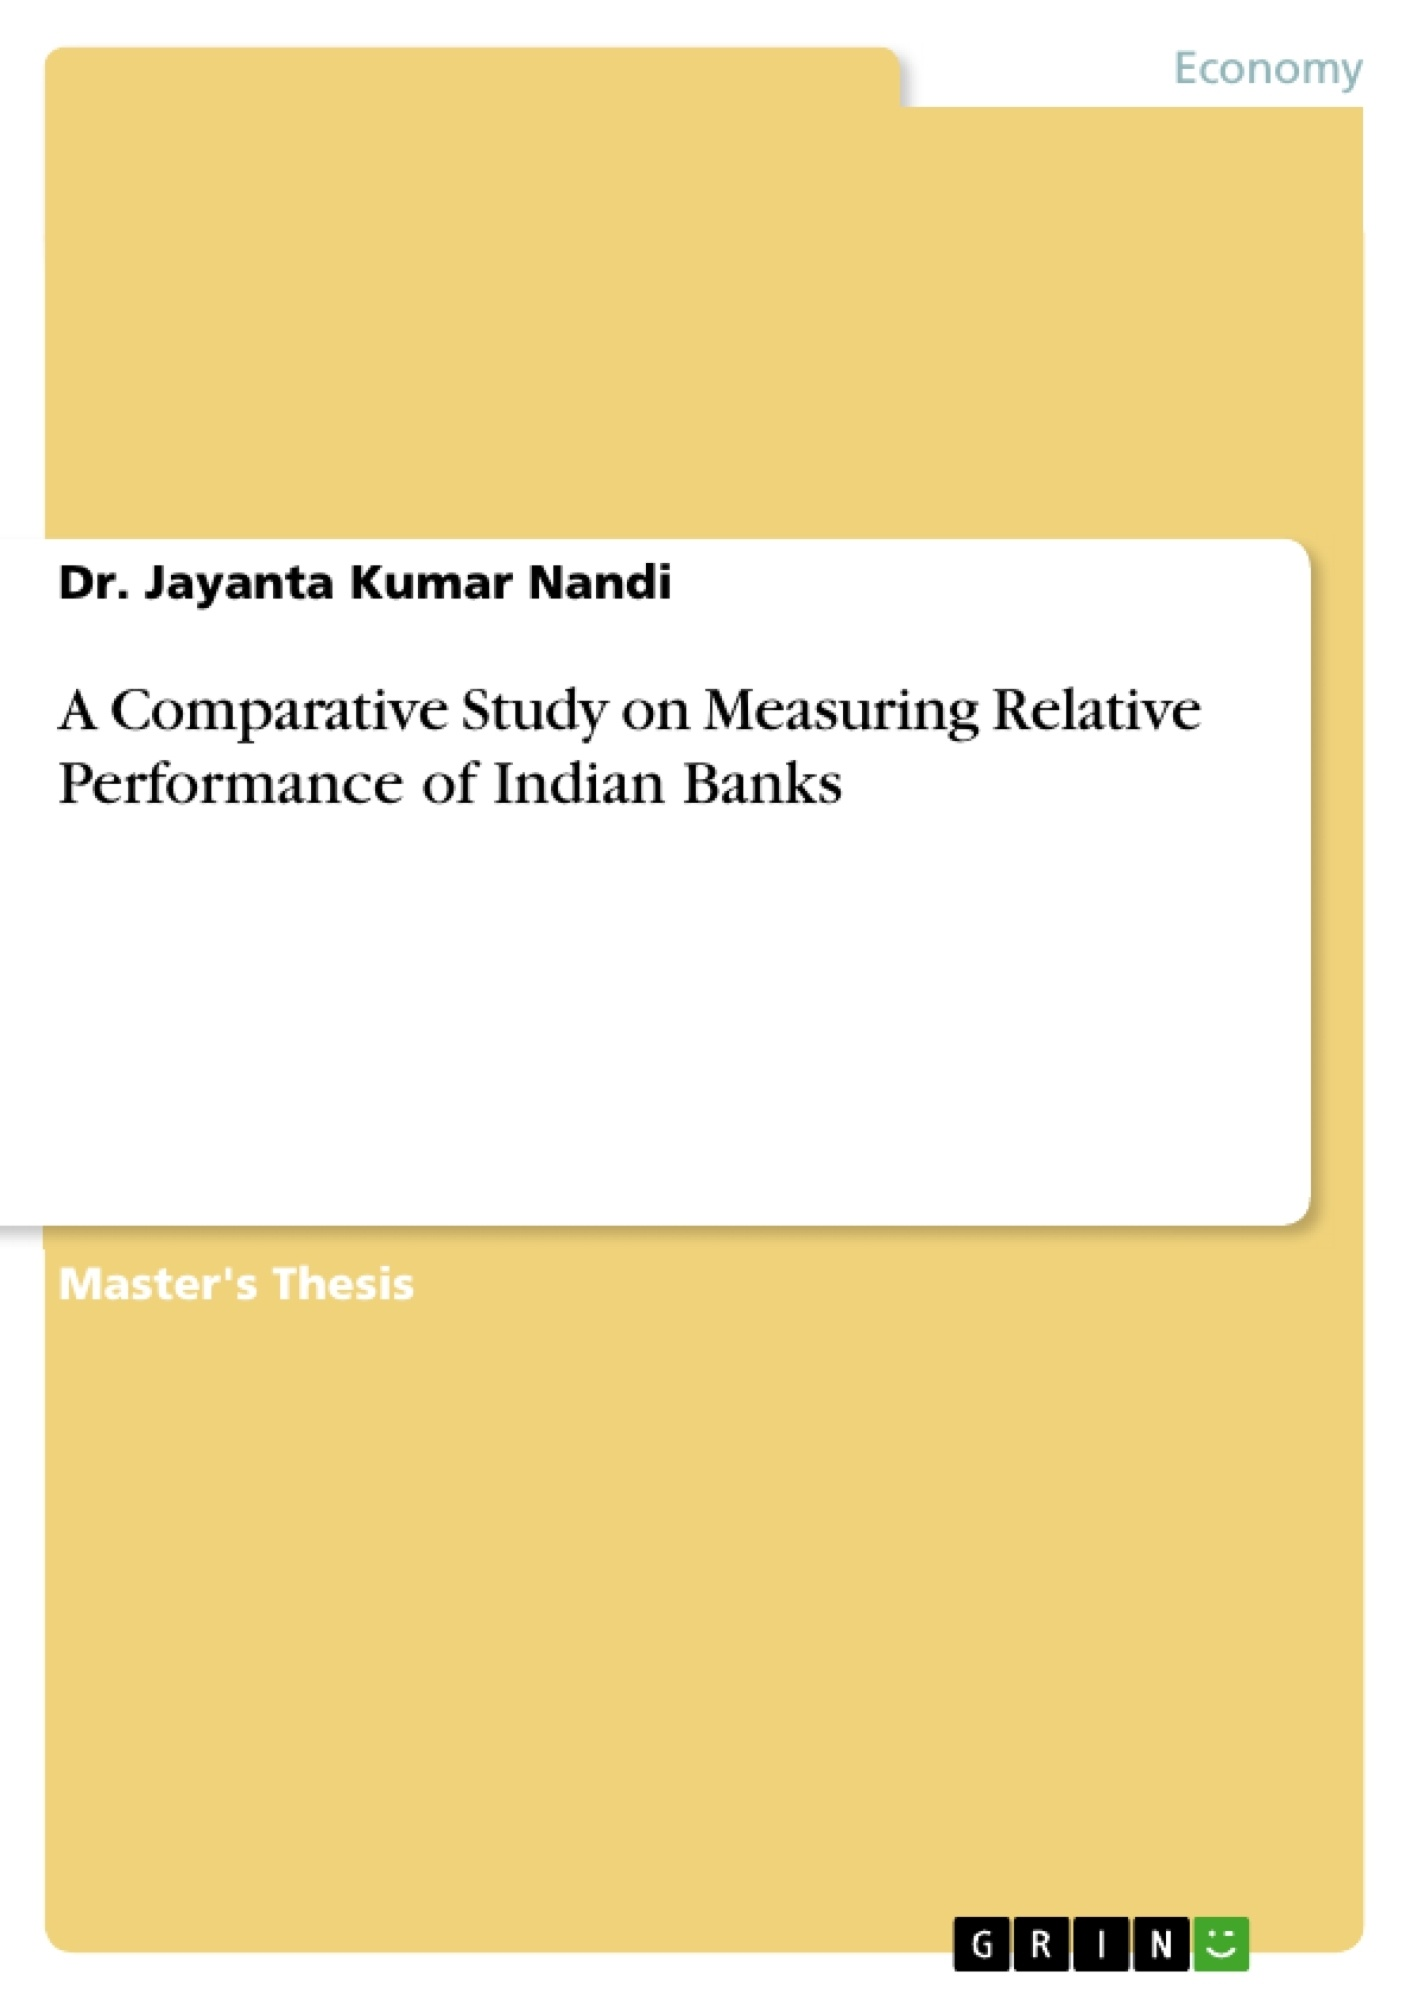 Title: A Comparative Study on Measuring Relative Performance of Indian Banks